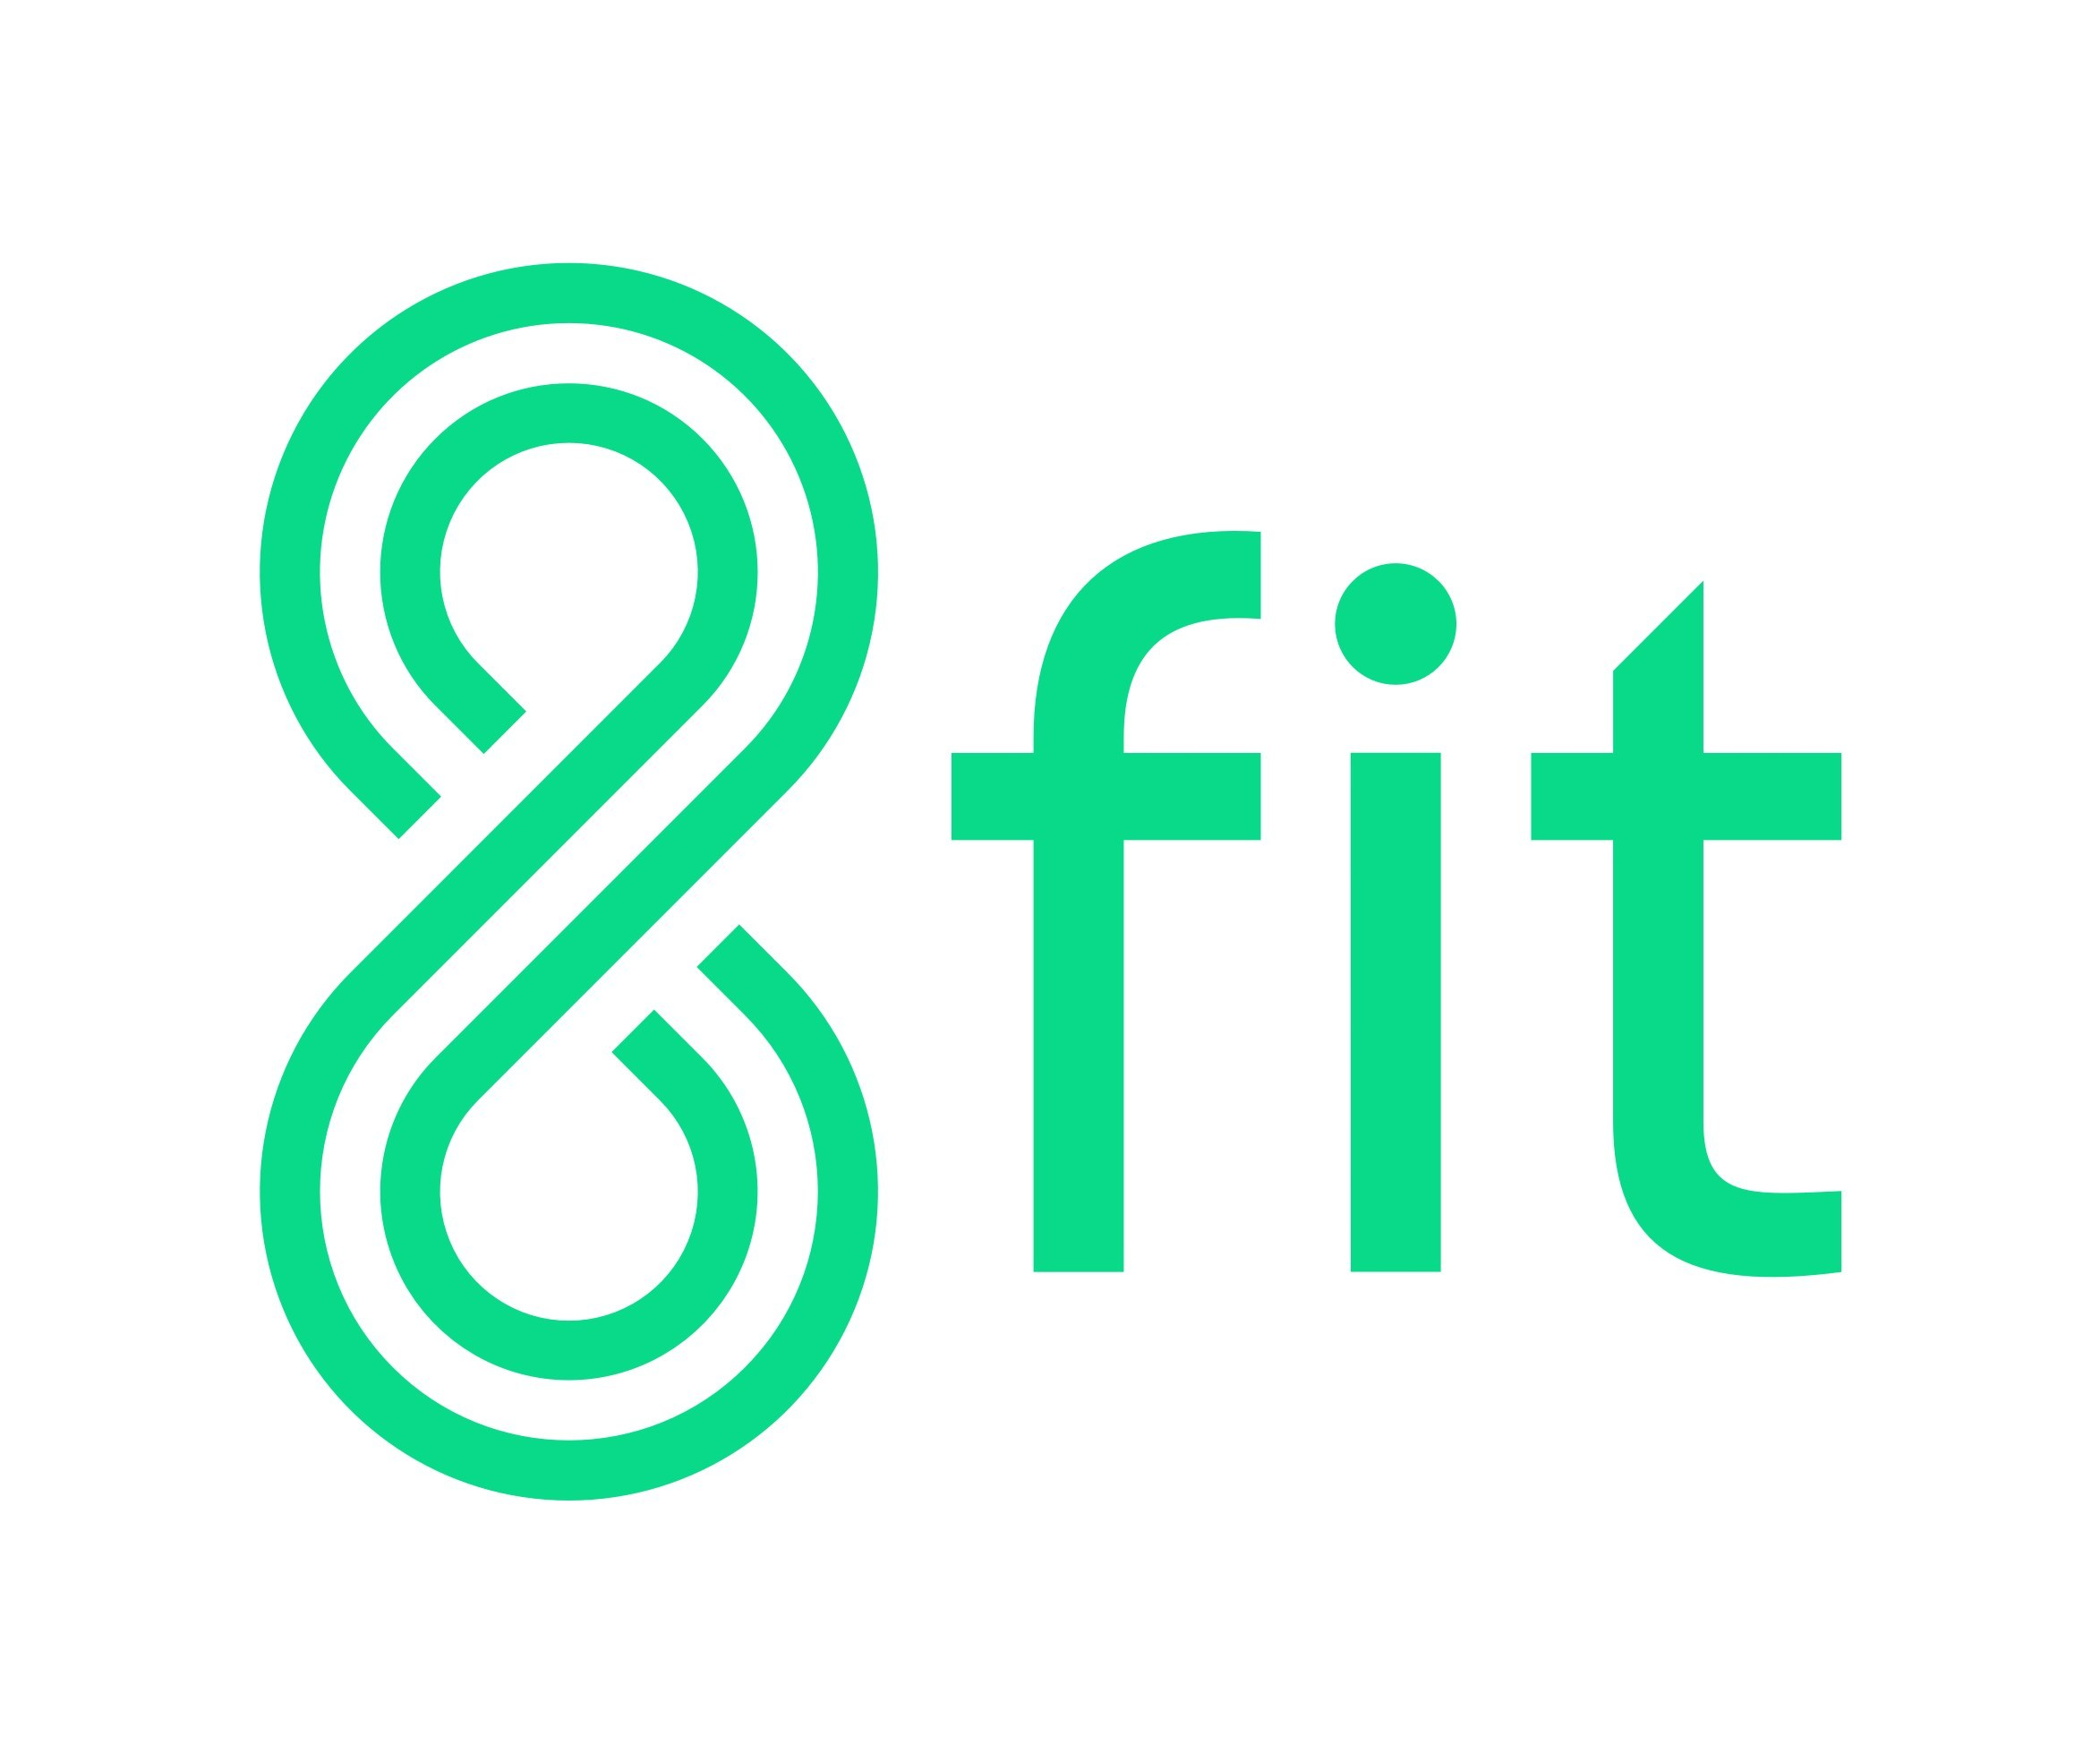 8fit: building healthy habits for life.